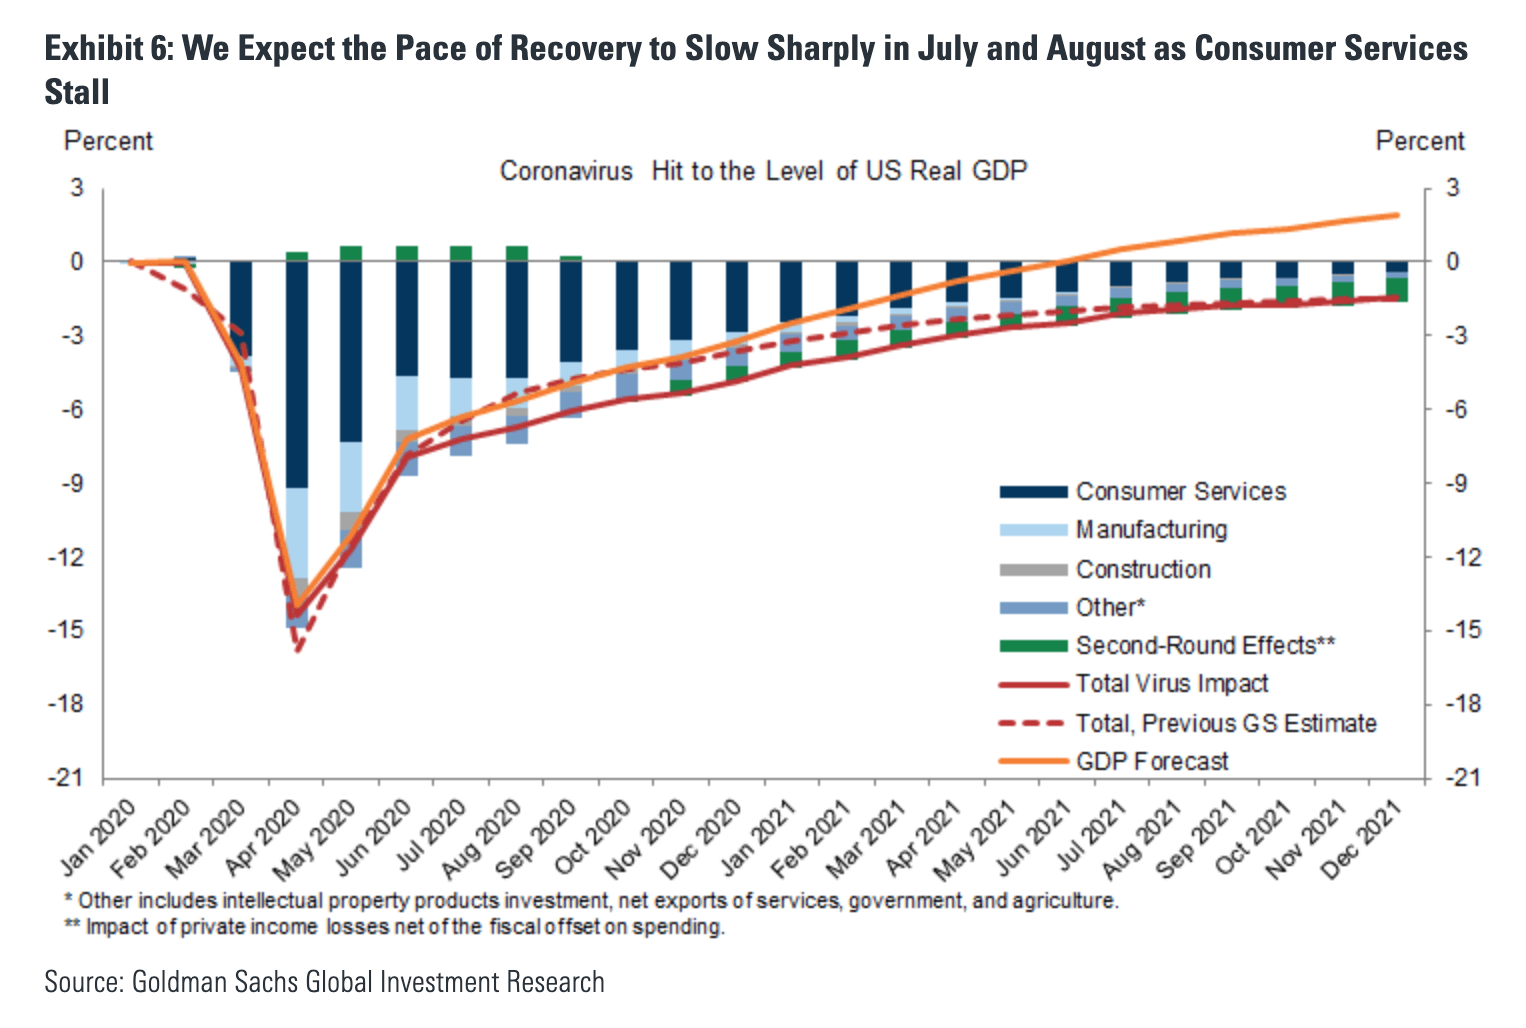 Goldman Sachs GDP outlook 2020-01 to 2021-12 - The Basis Point